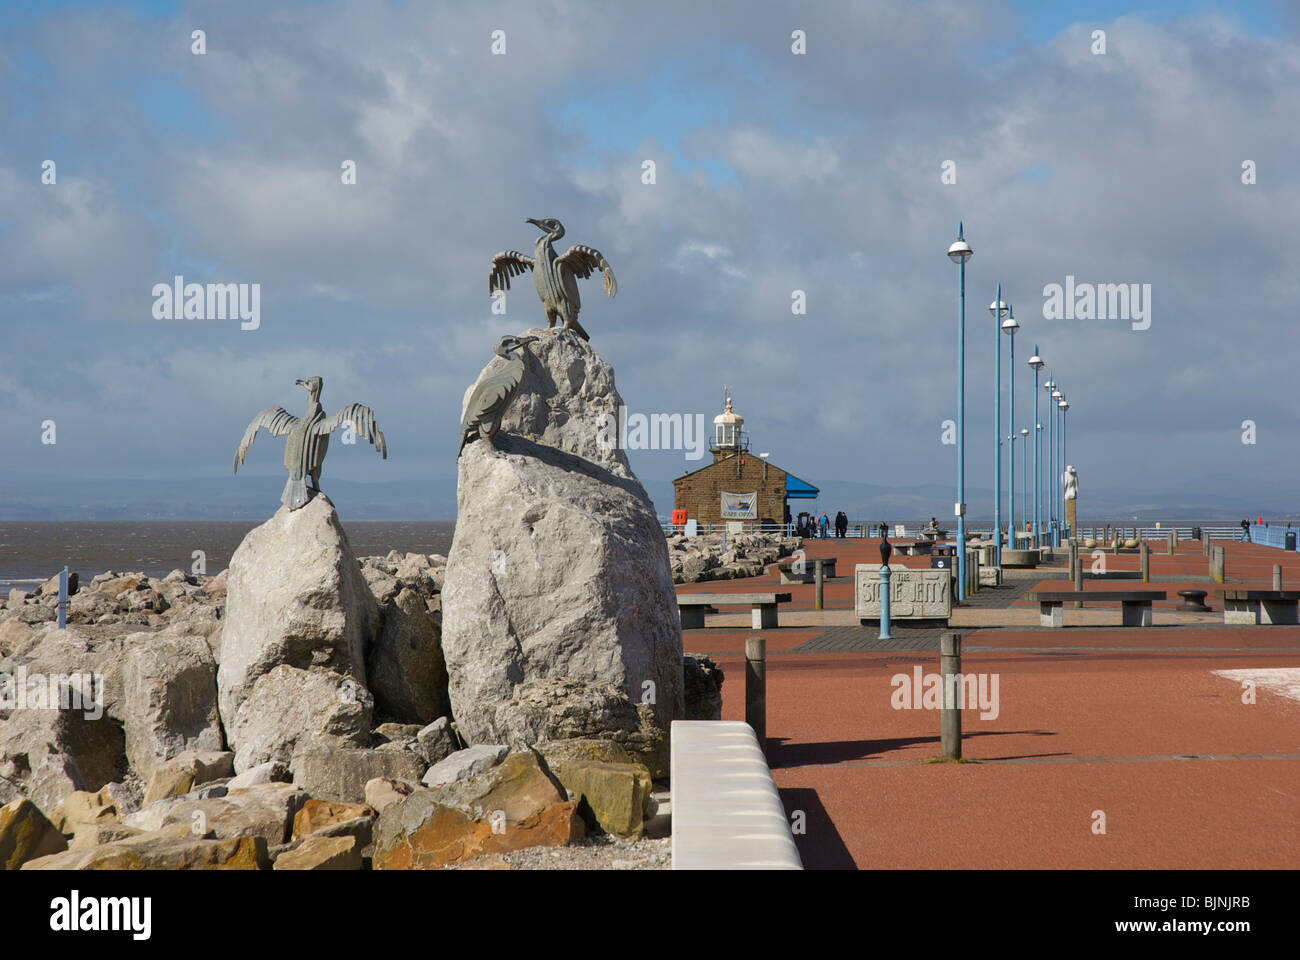 Sculpture of cormorants and Stone Jetty, Morecambe, Lancashire, England UK - Stock Image